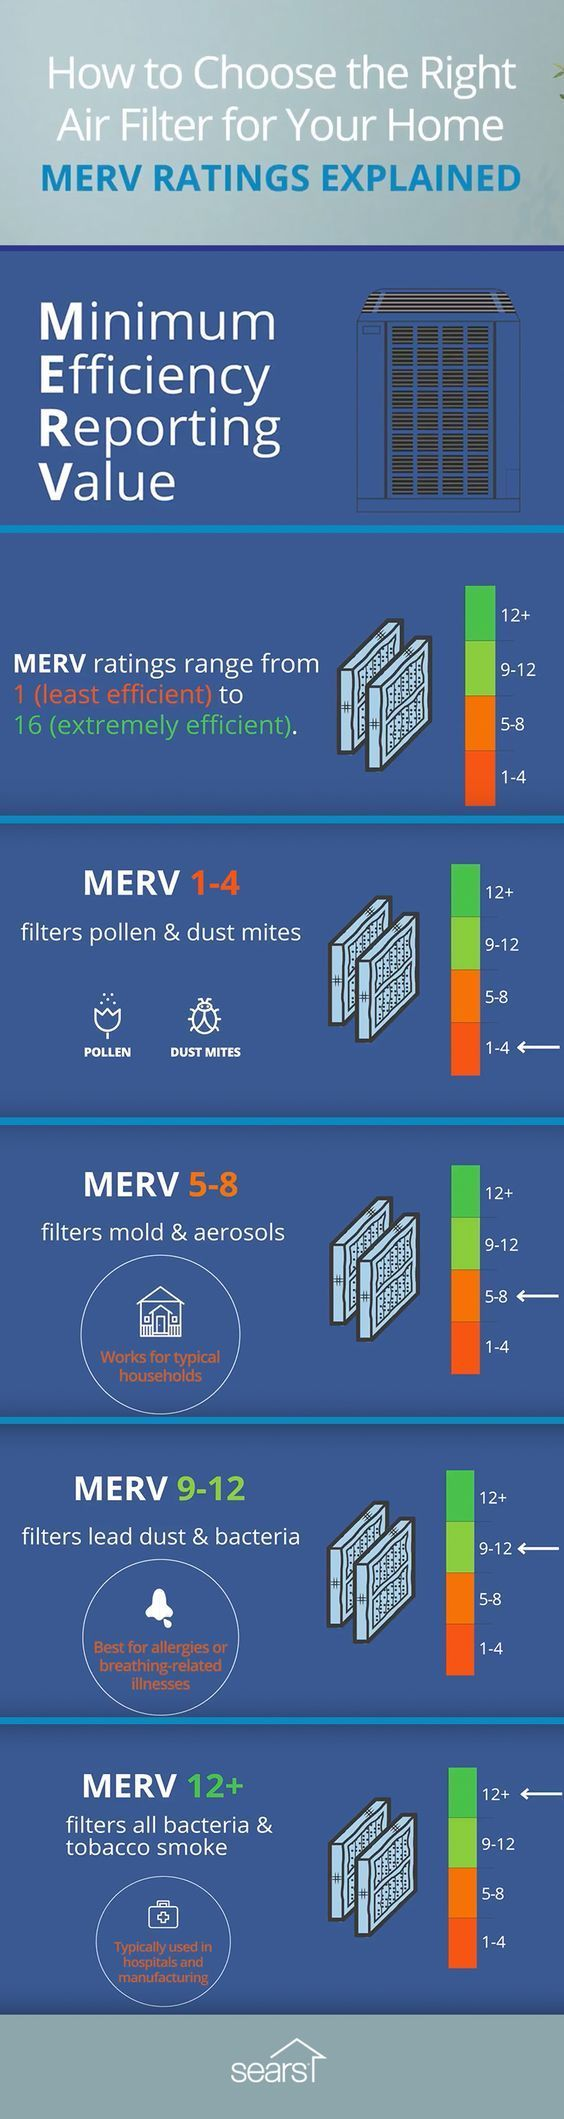 Choosing The Right Air Filter For Your Home (infographic